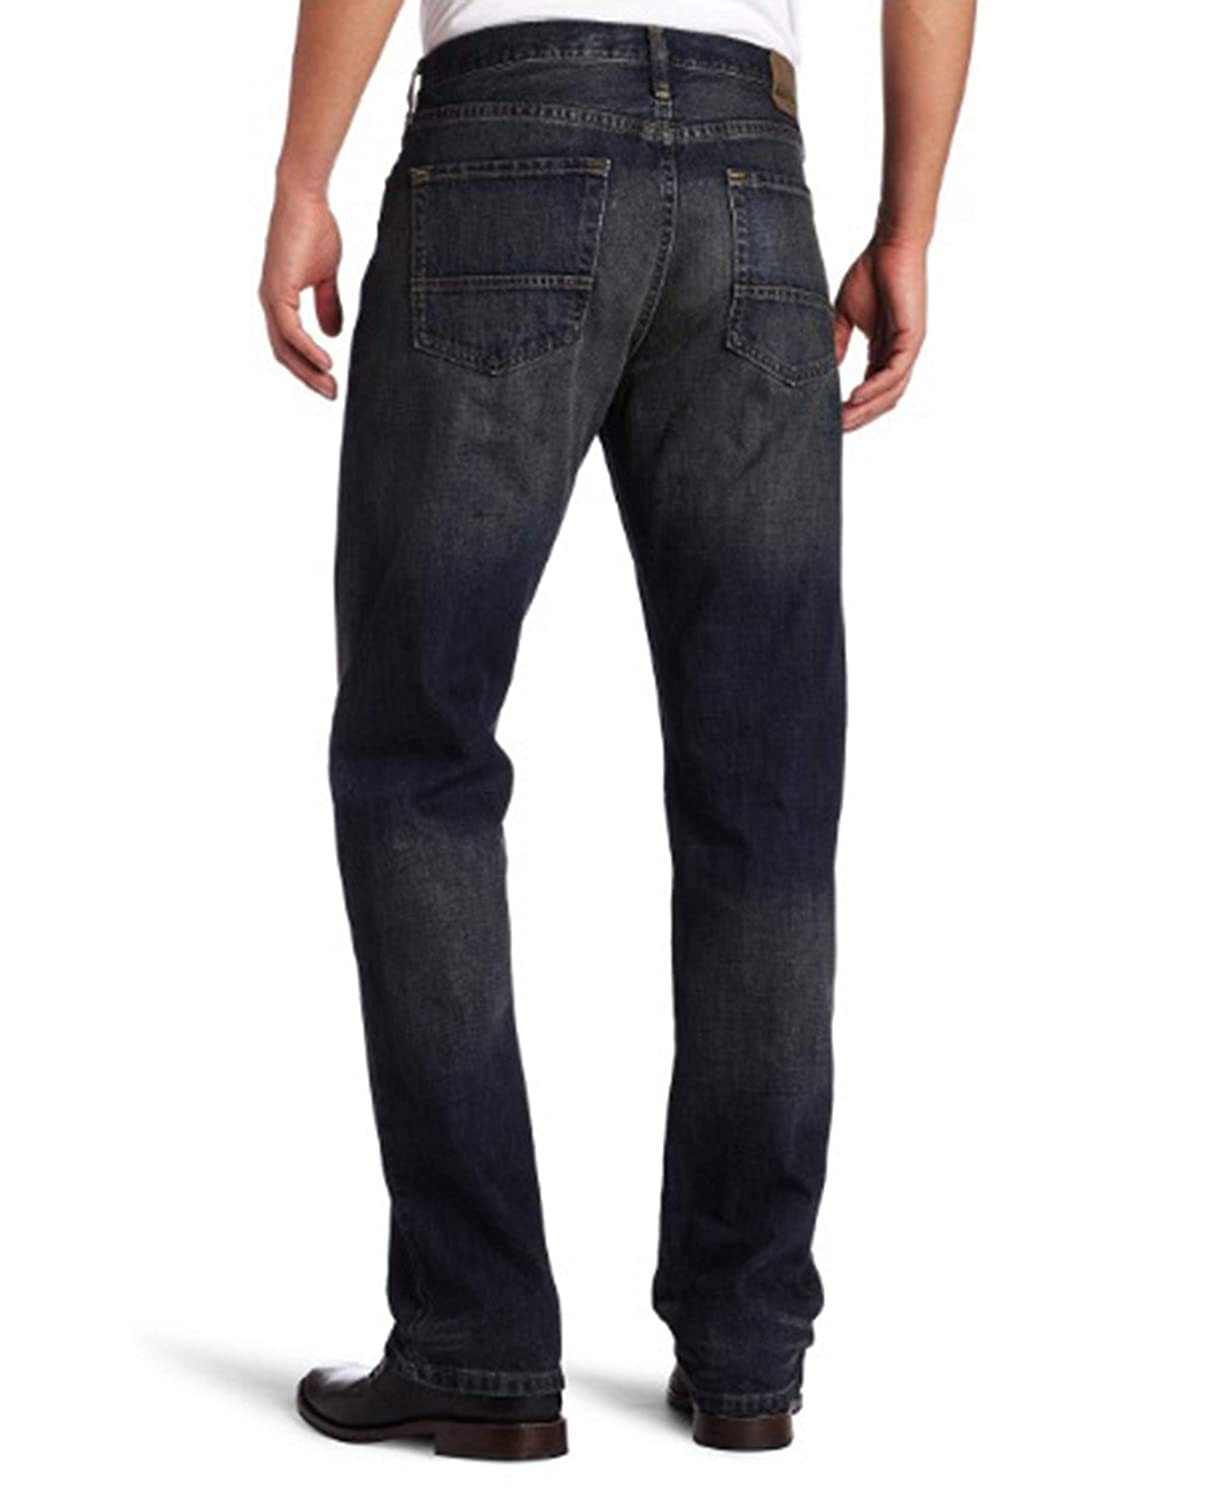 Nautica Mens Relaxed Fit Jean Pant